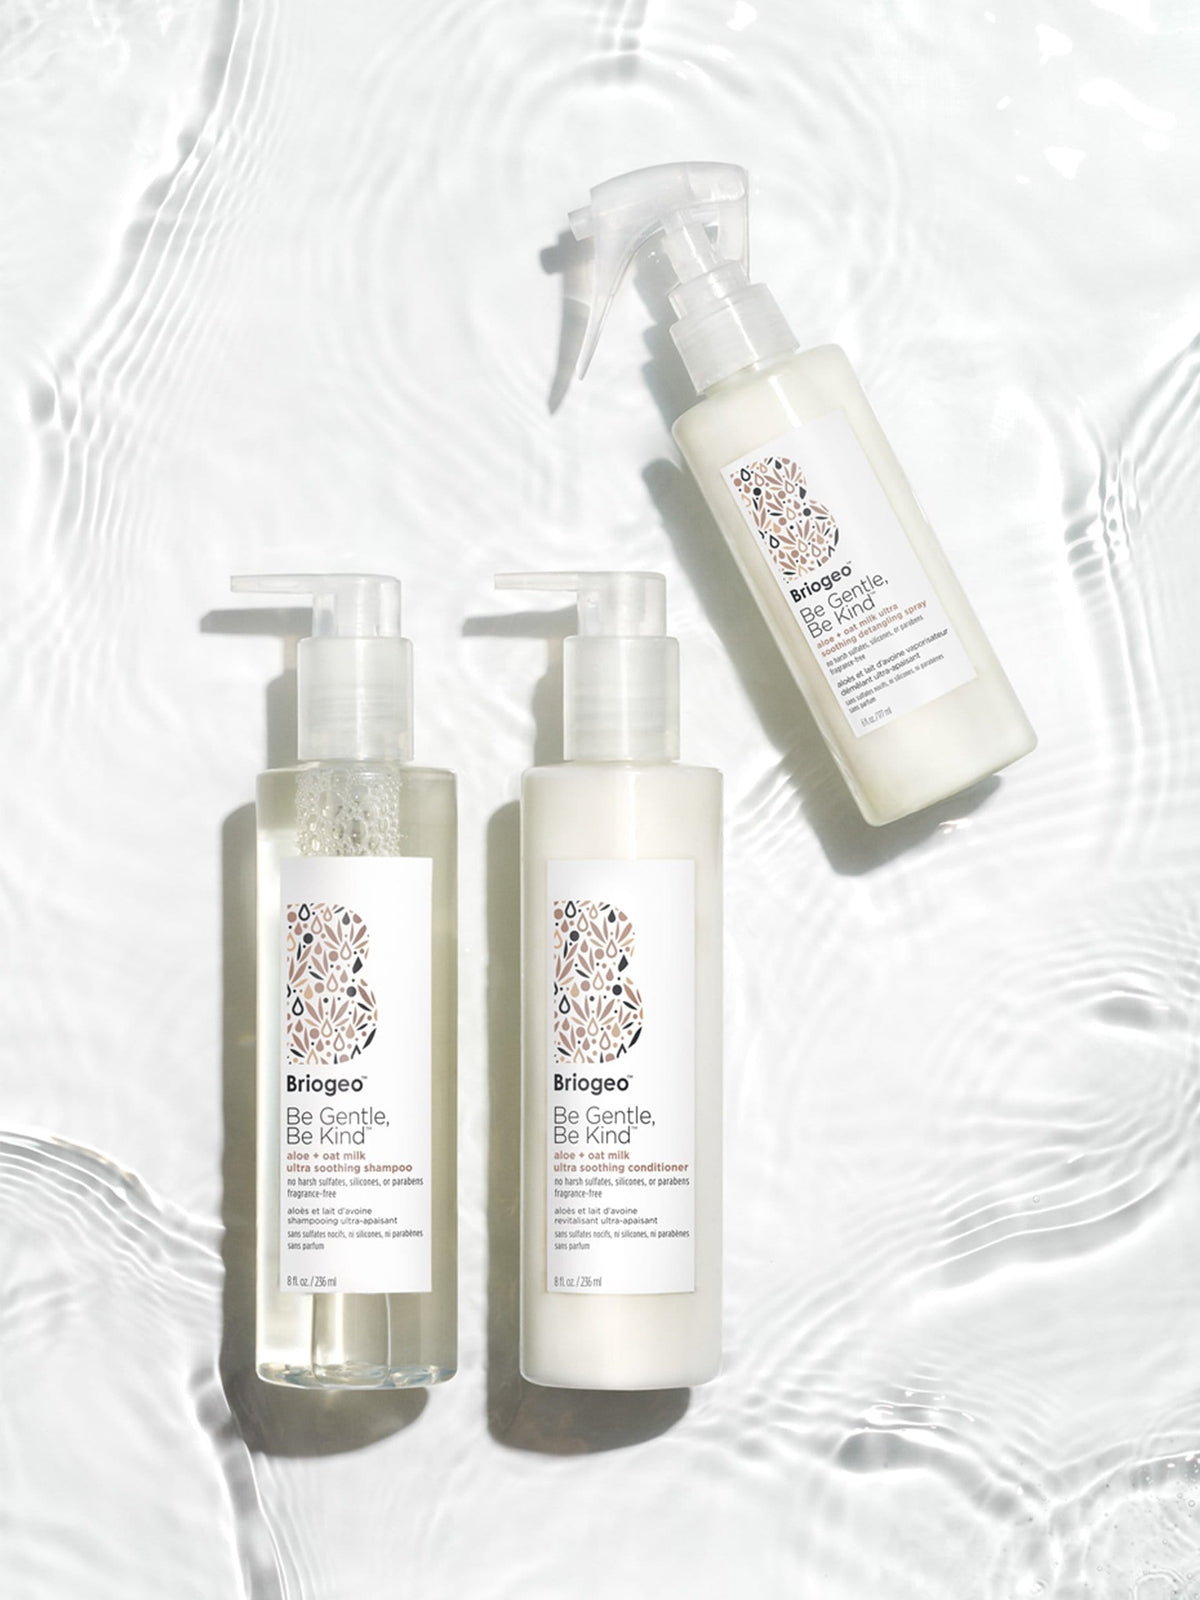 Be Gentle, Be Kind Aloe + Oat Milk Ultra Soothing Shampoo